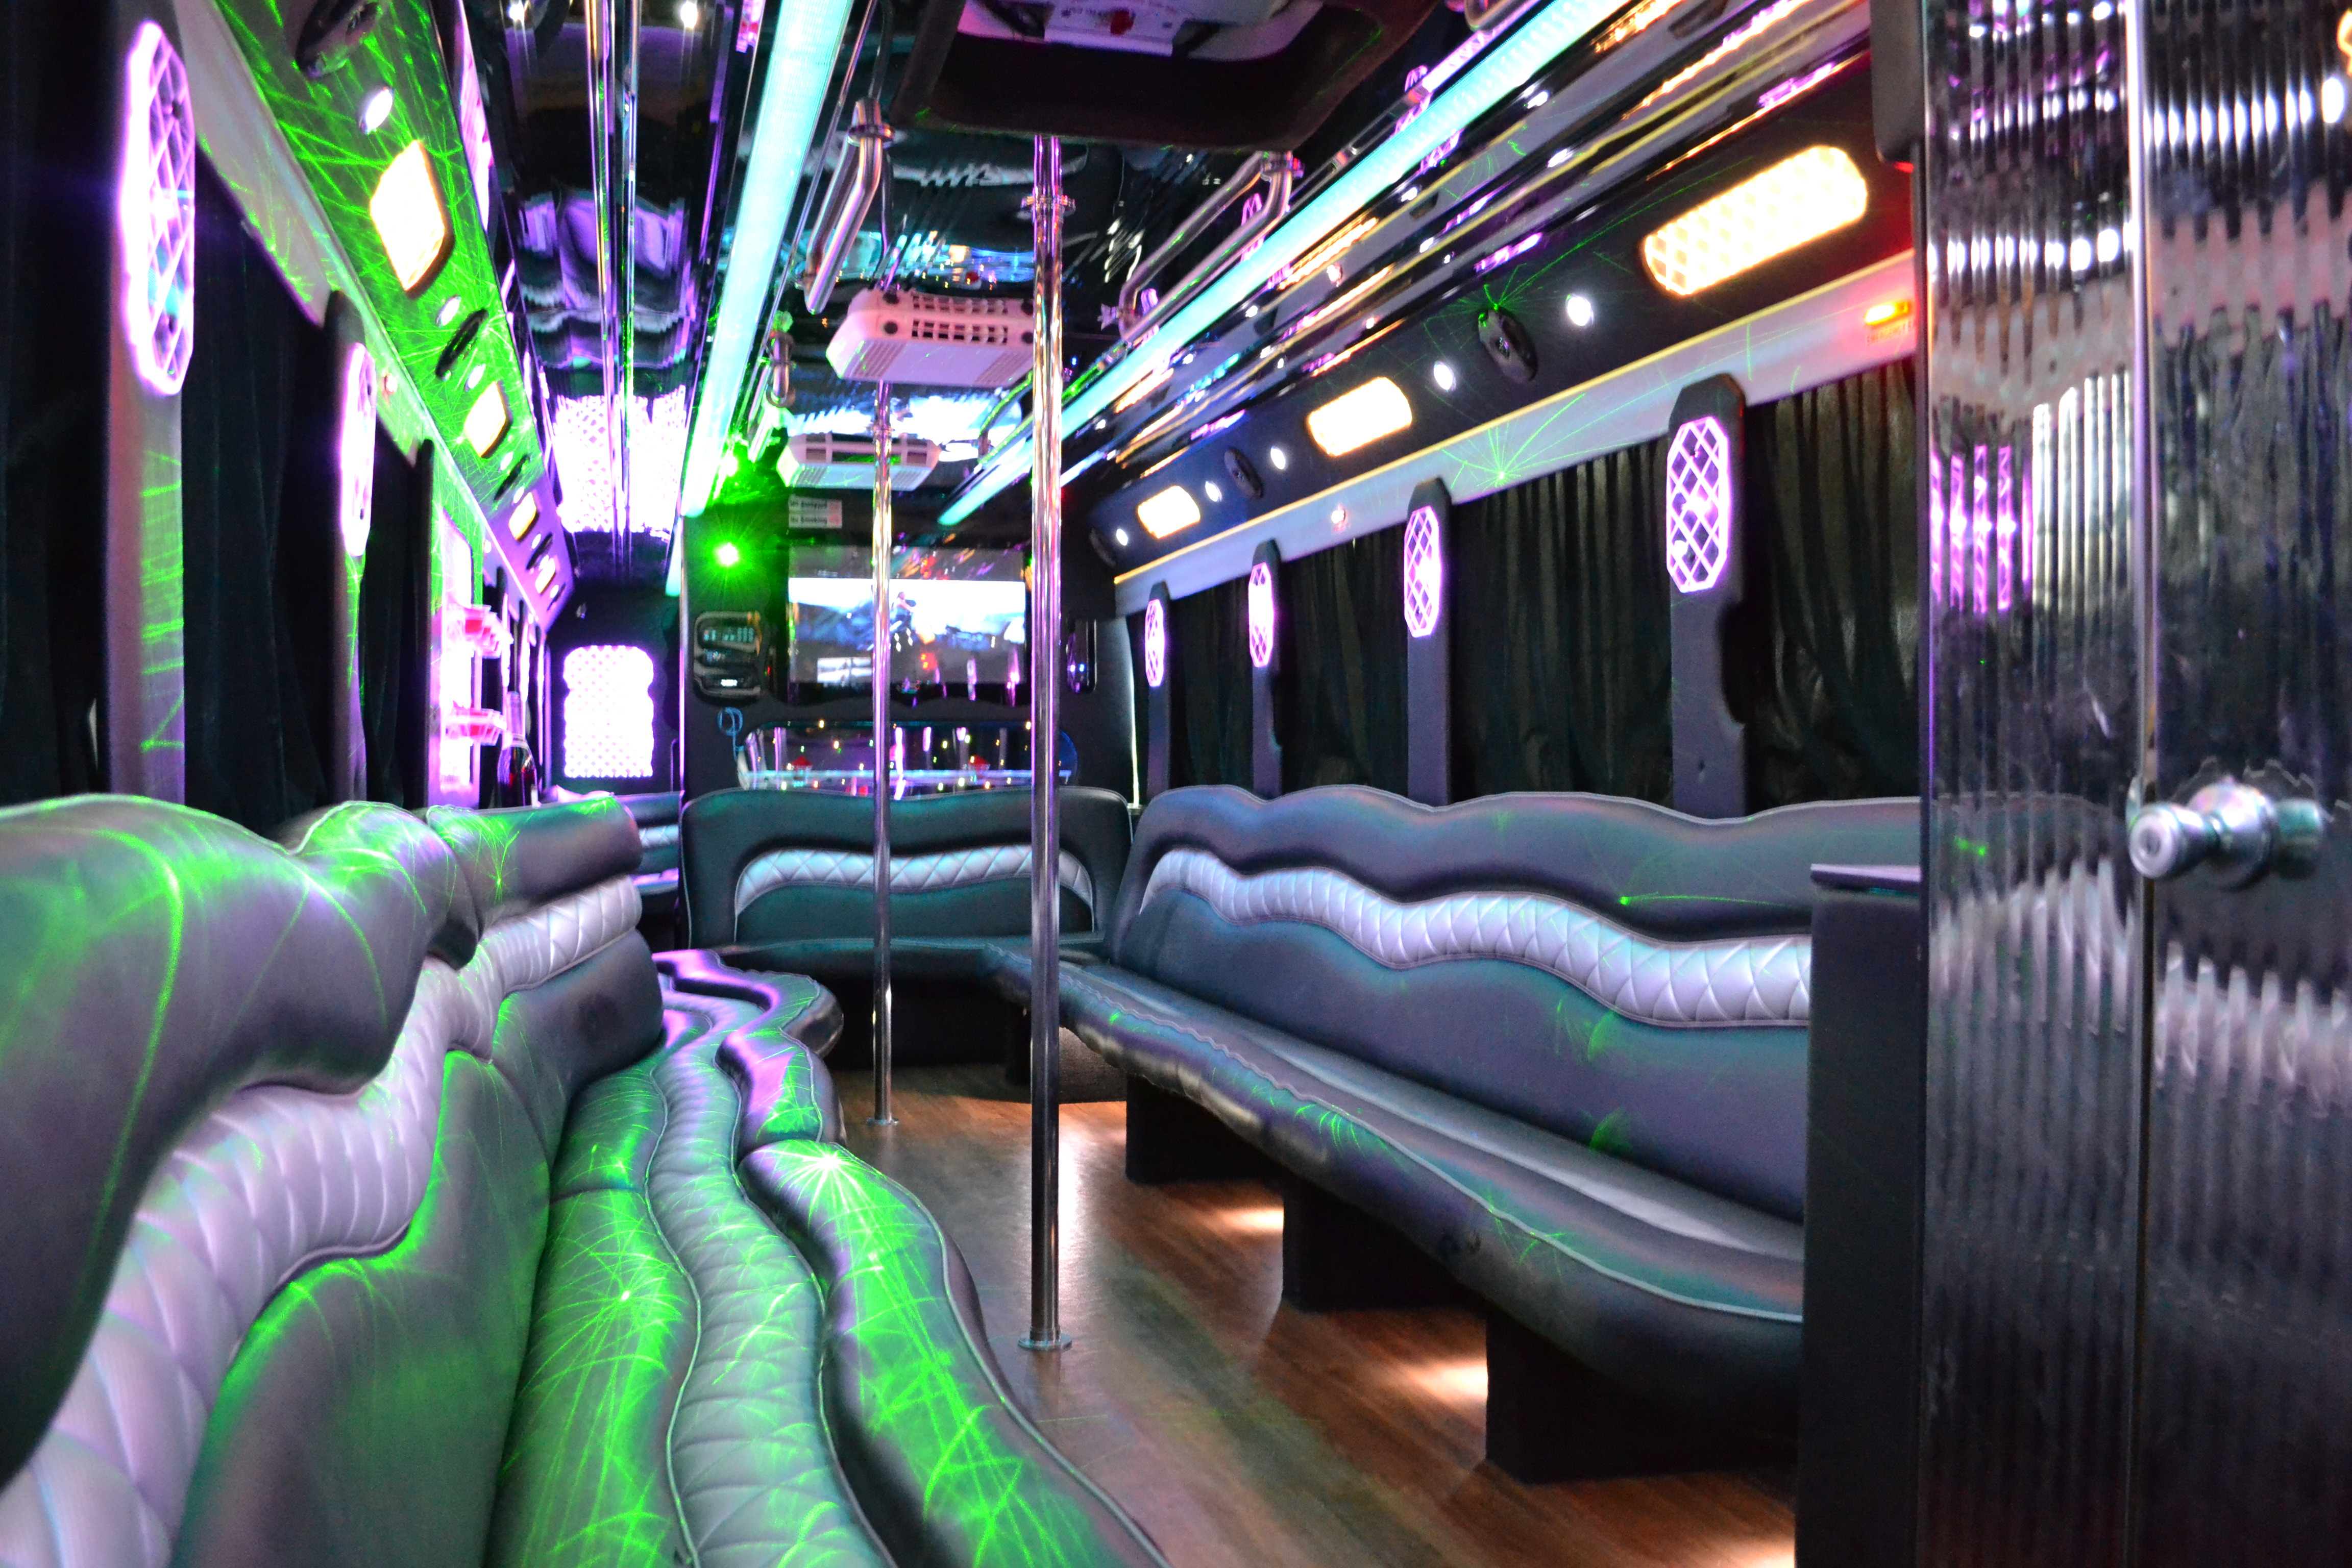 50 Pax party bus with a VIP Room